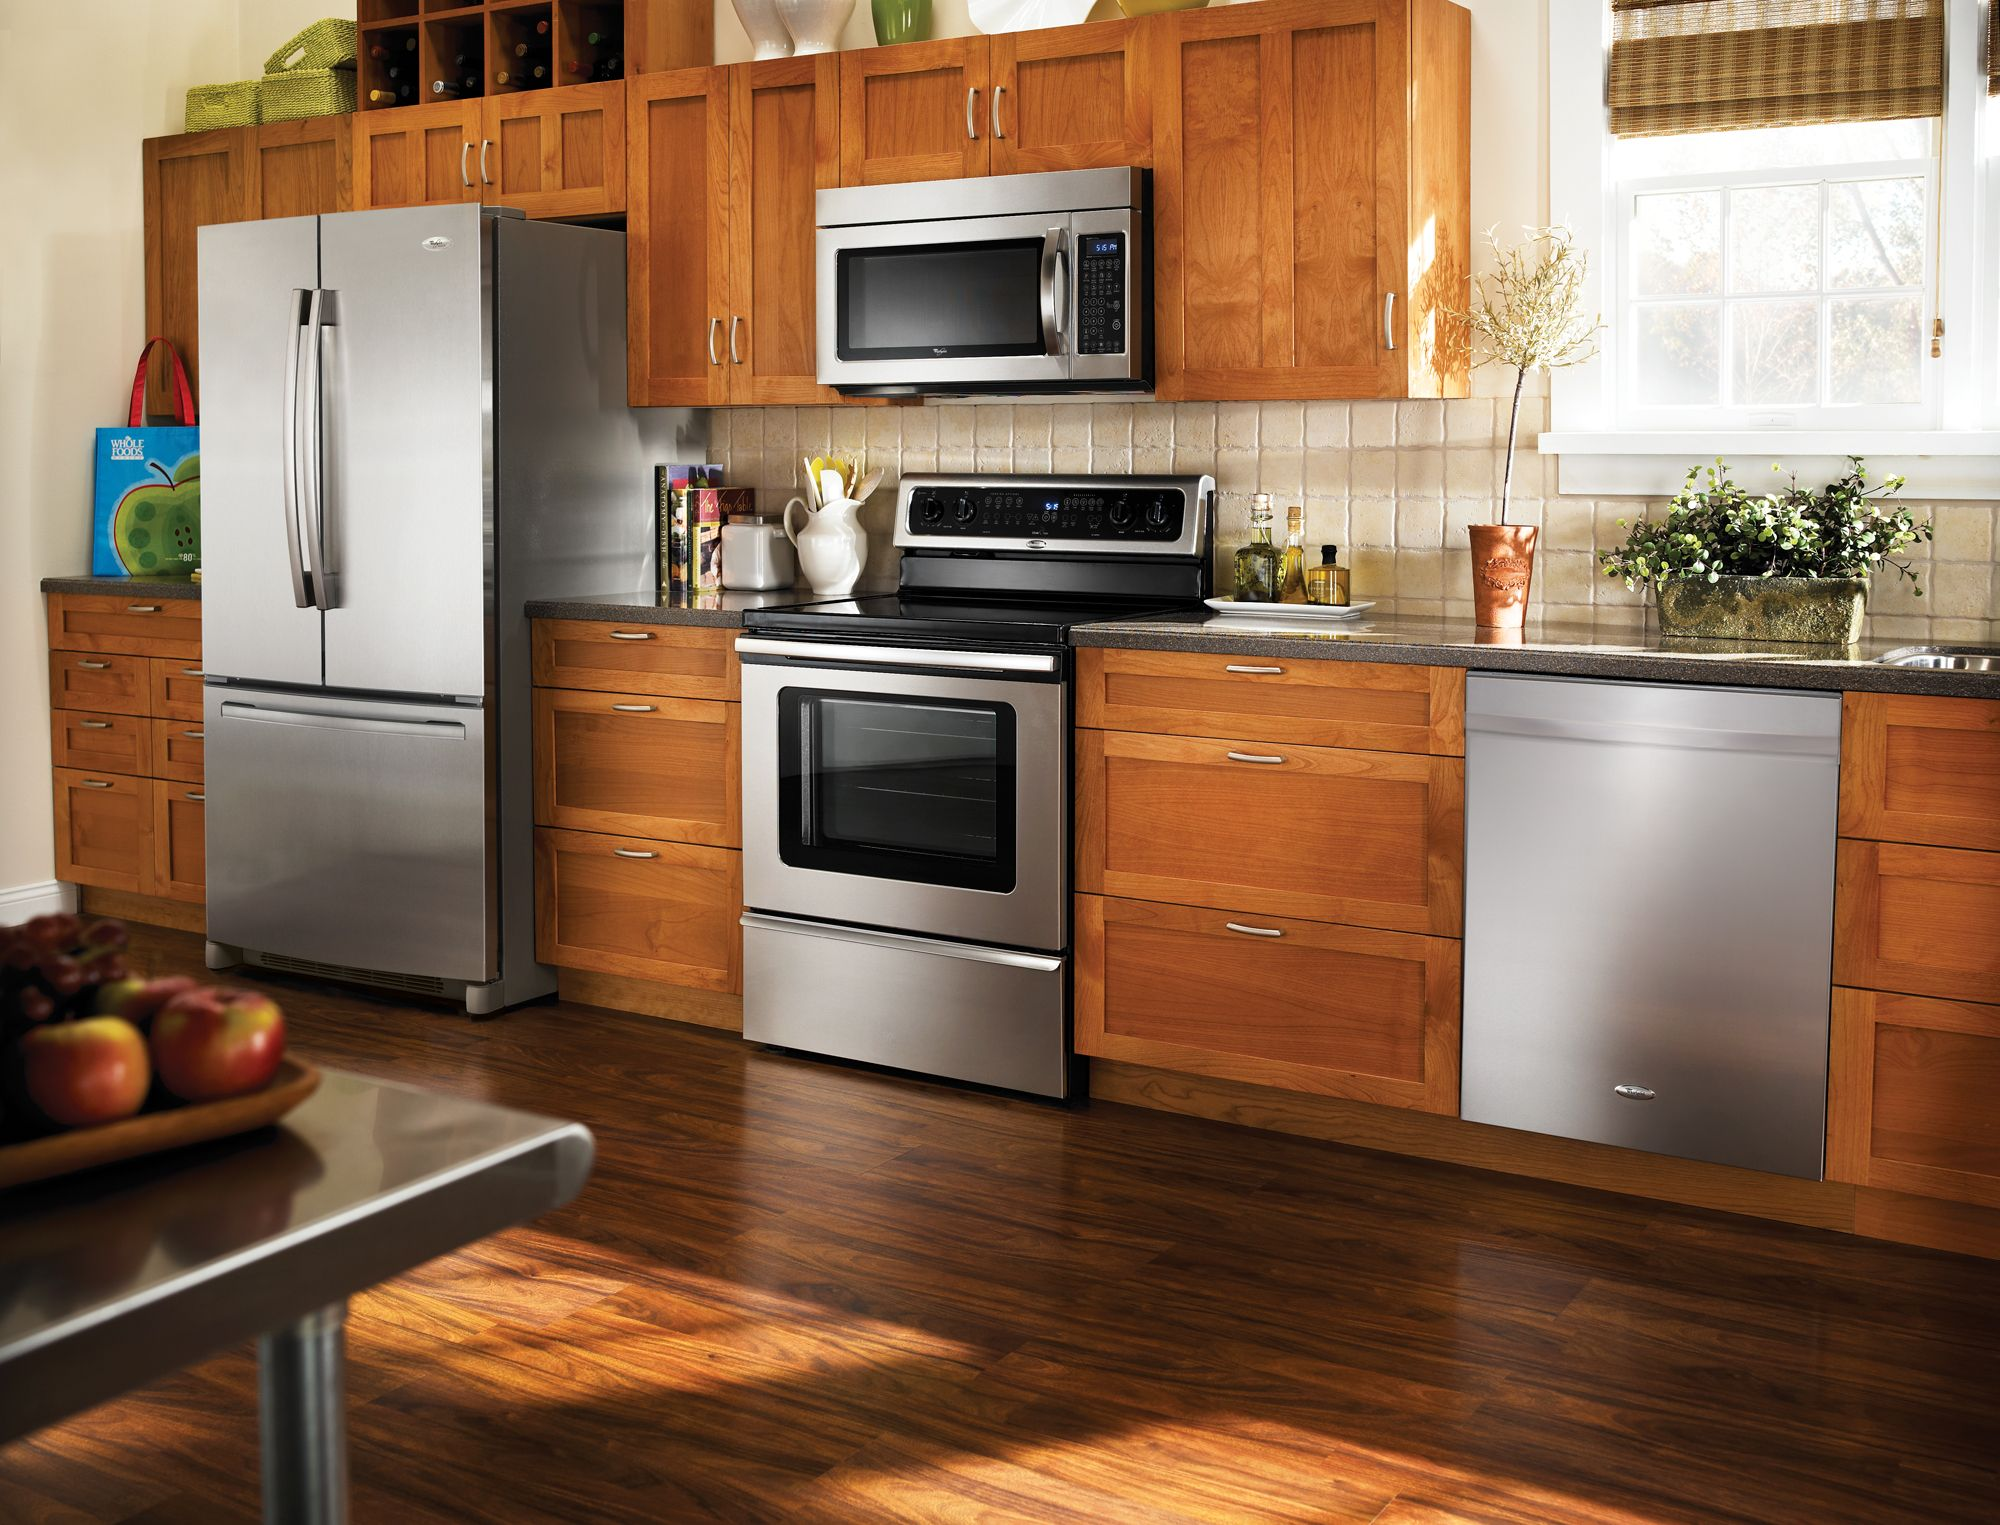 Whirlpool 22 Cu Ft French Door Refrigerator 5 3 Cu Ft Electric Range And 24 Dishwasher Stainle Kitchen Sale Kitchen Design Whirlpool Kitchen Appliances